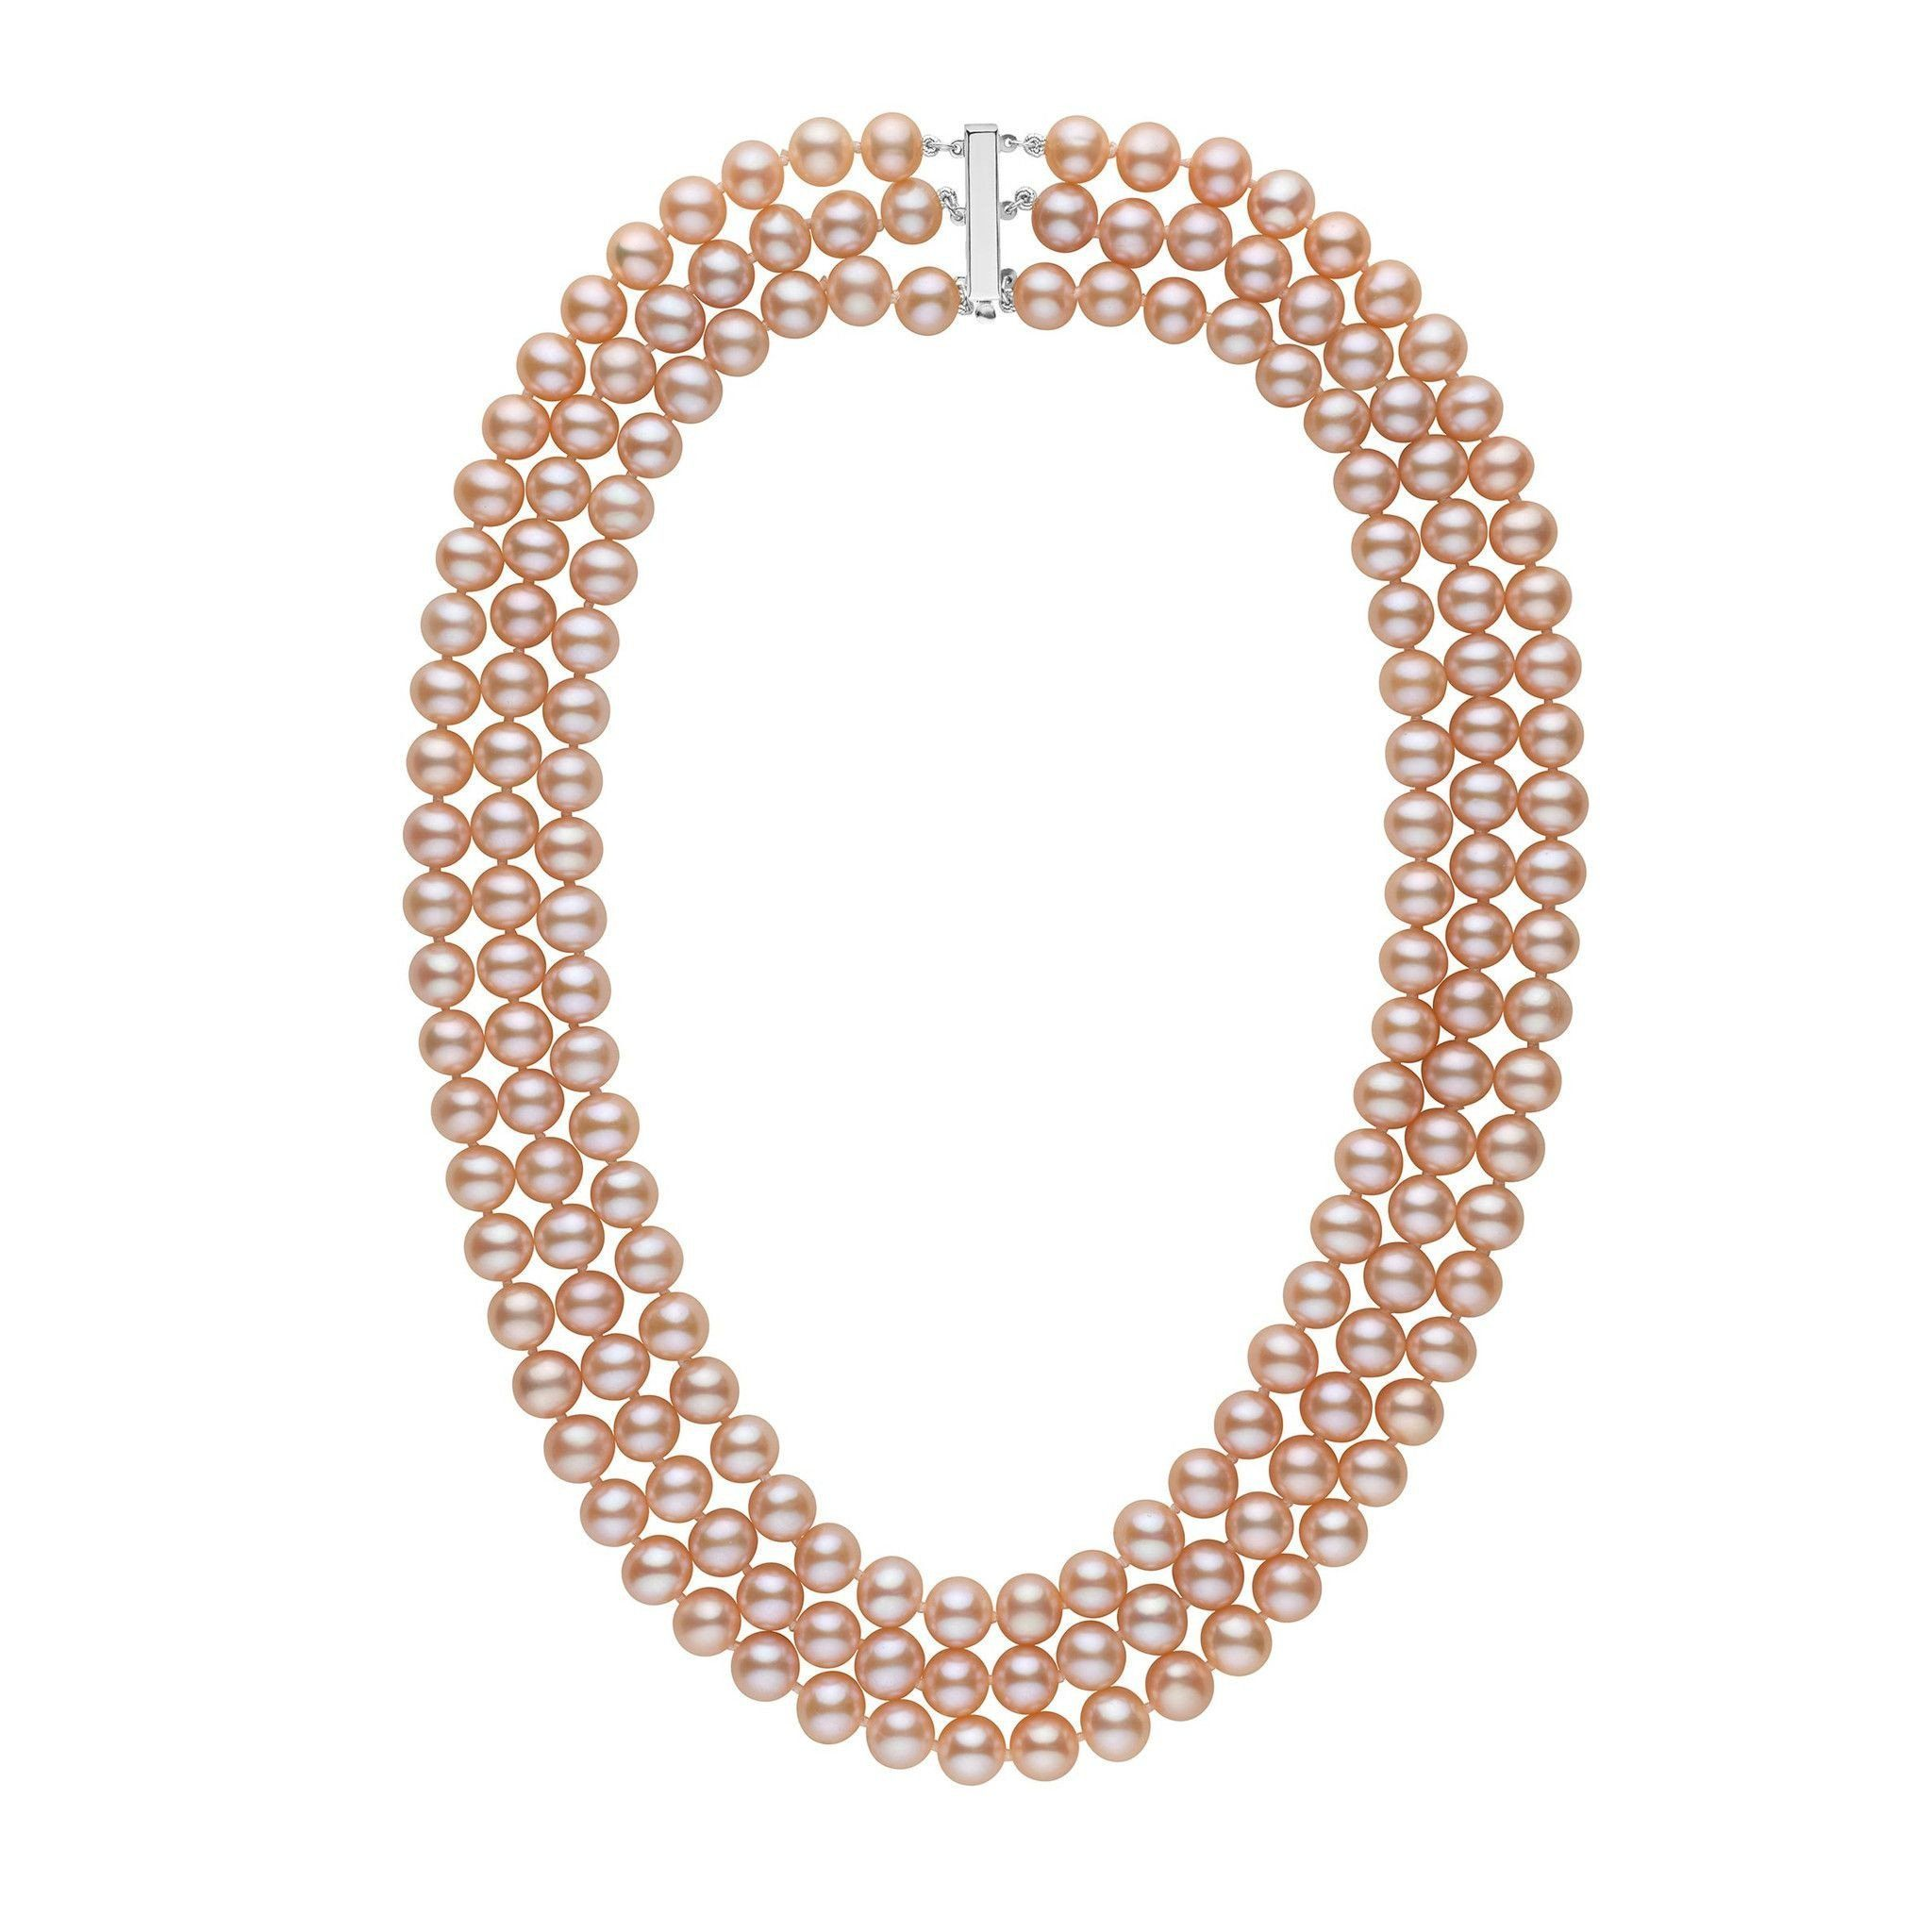 7.5-8.0 mm Triple-Strand AA+ Pink to Peach Freshwater Pearl Necklace